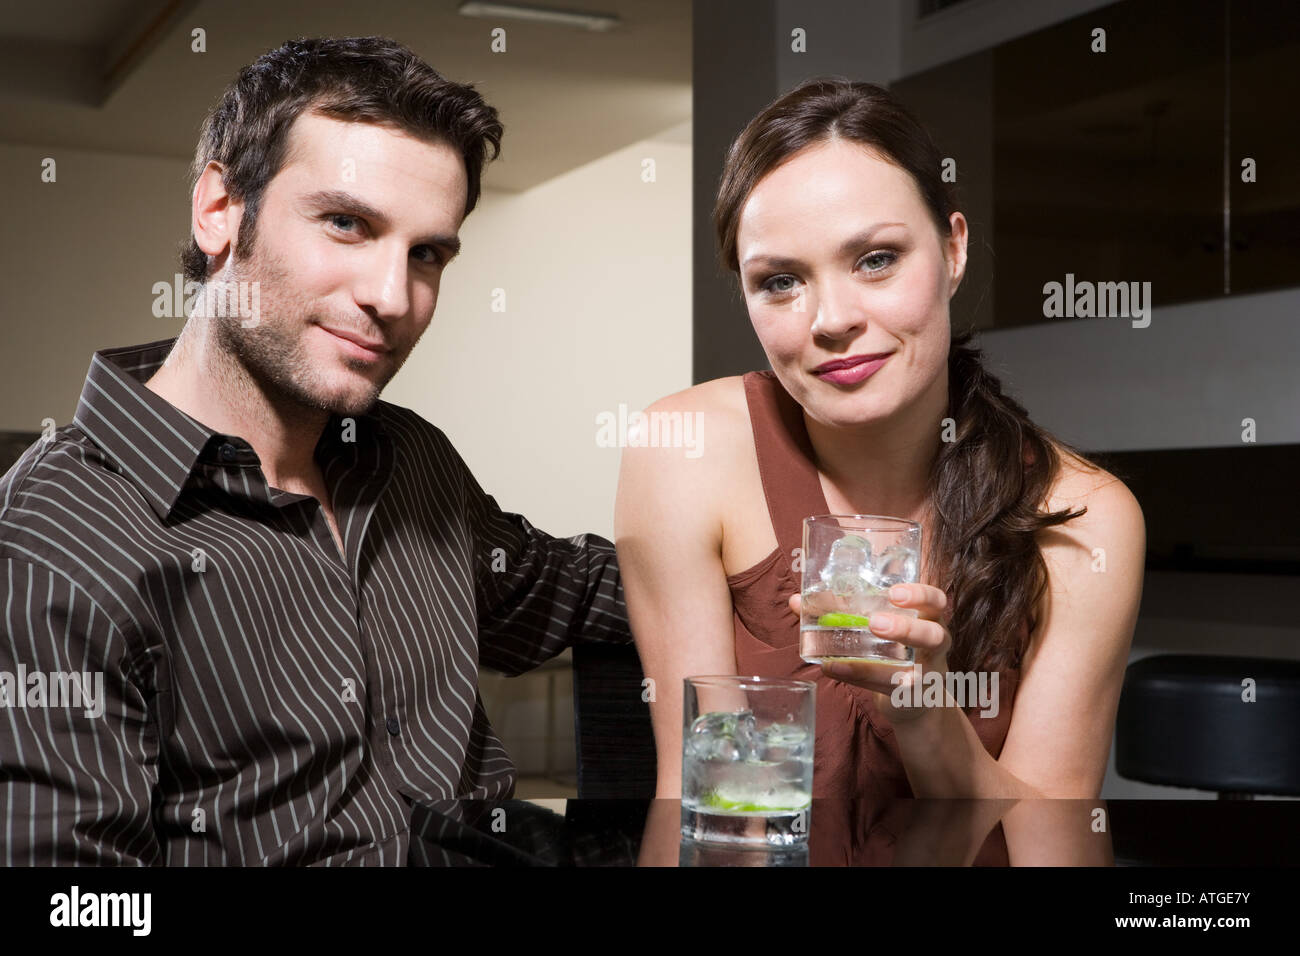 Couple drinking in a bar Stock Photo